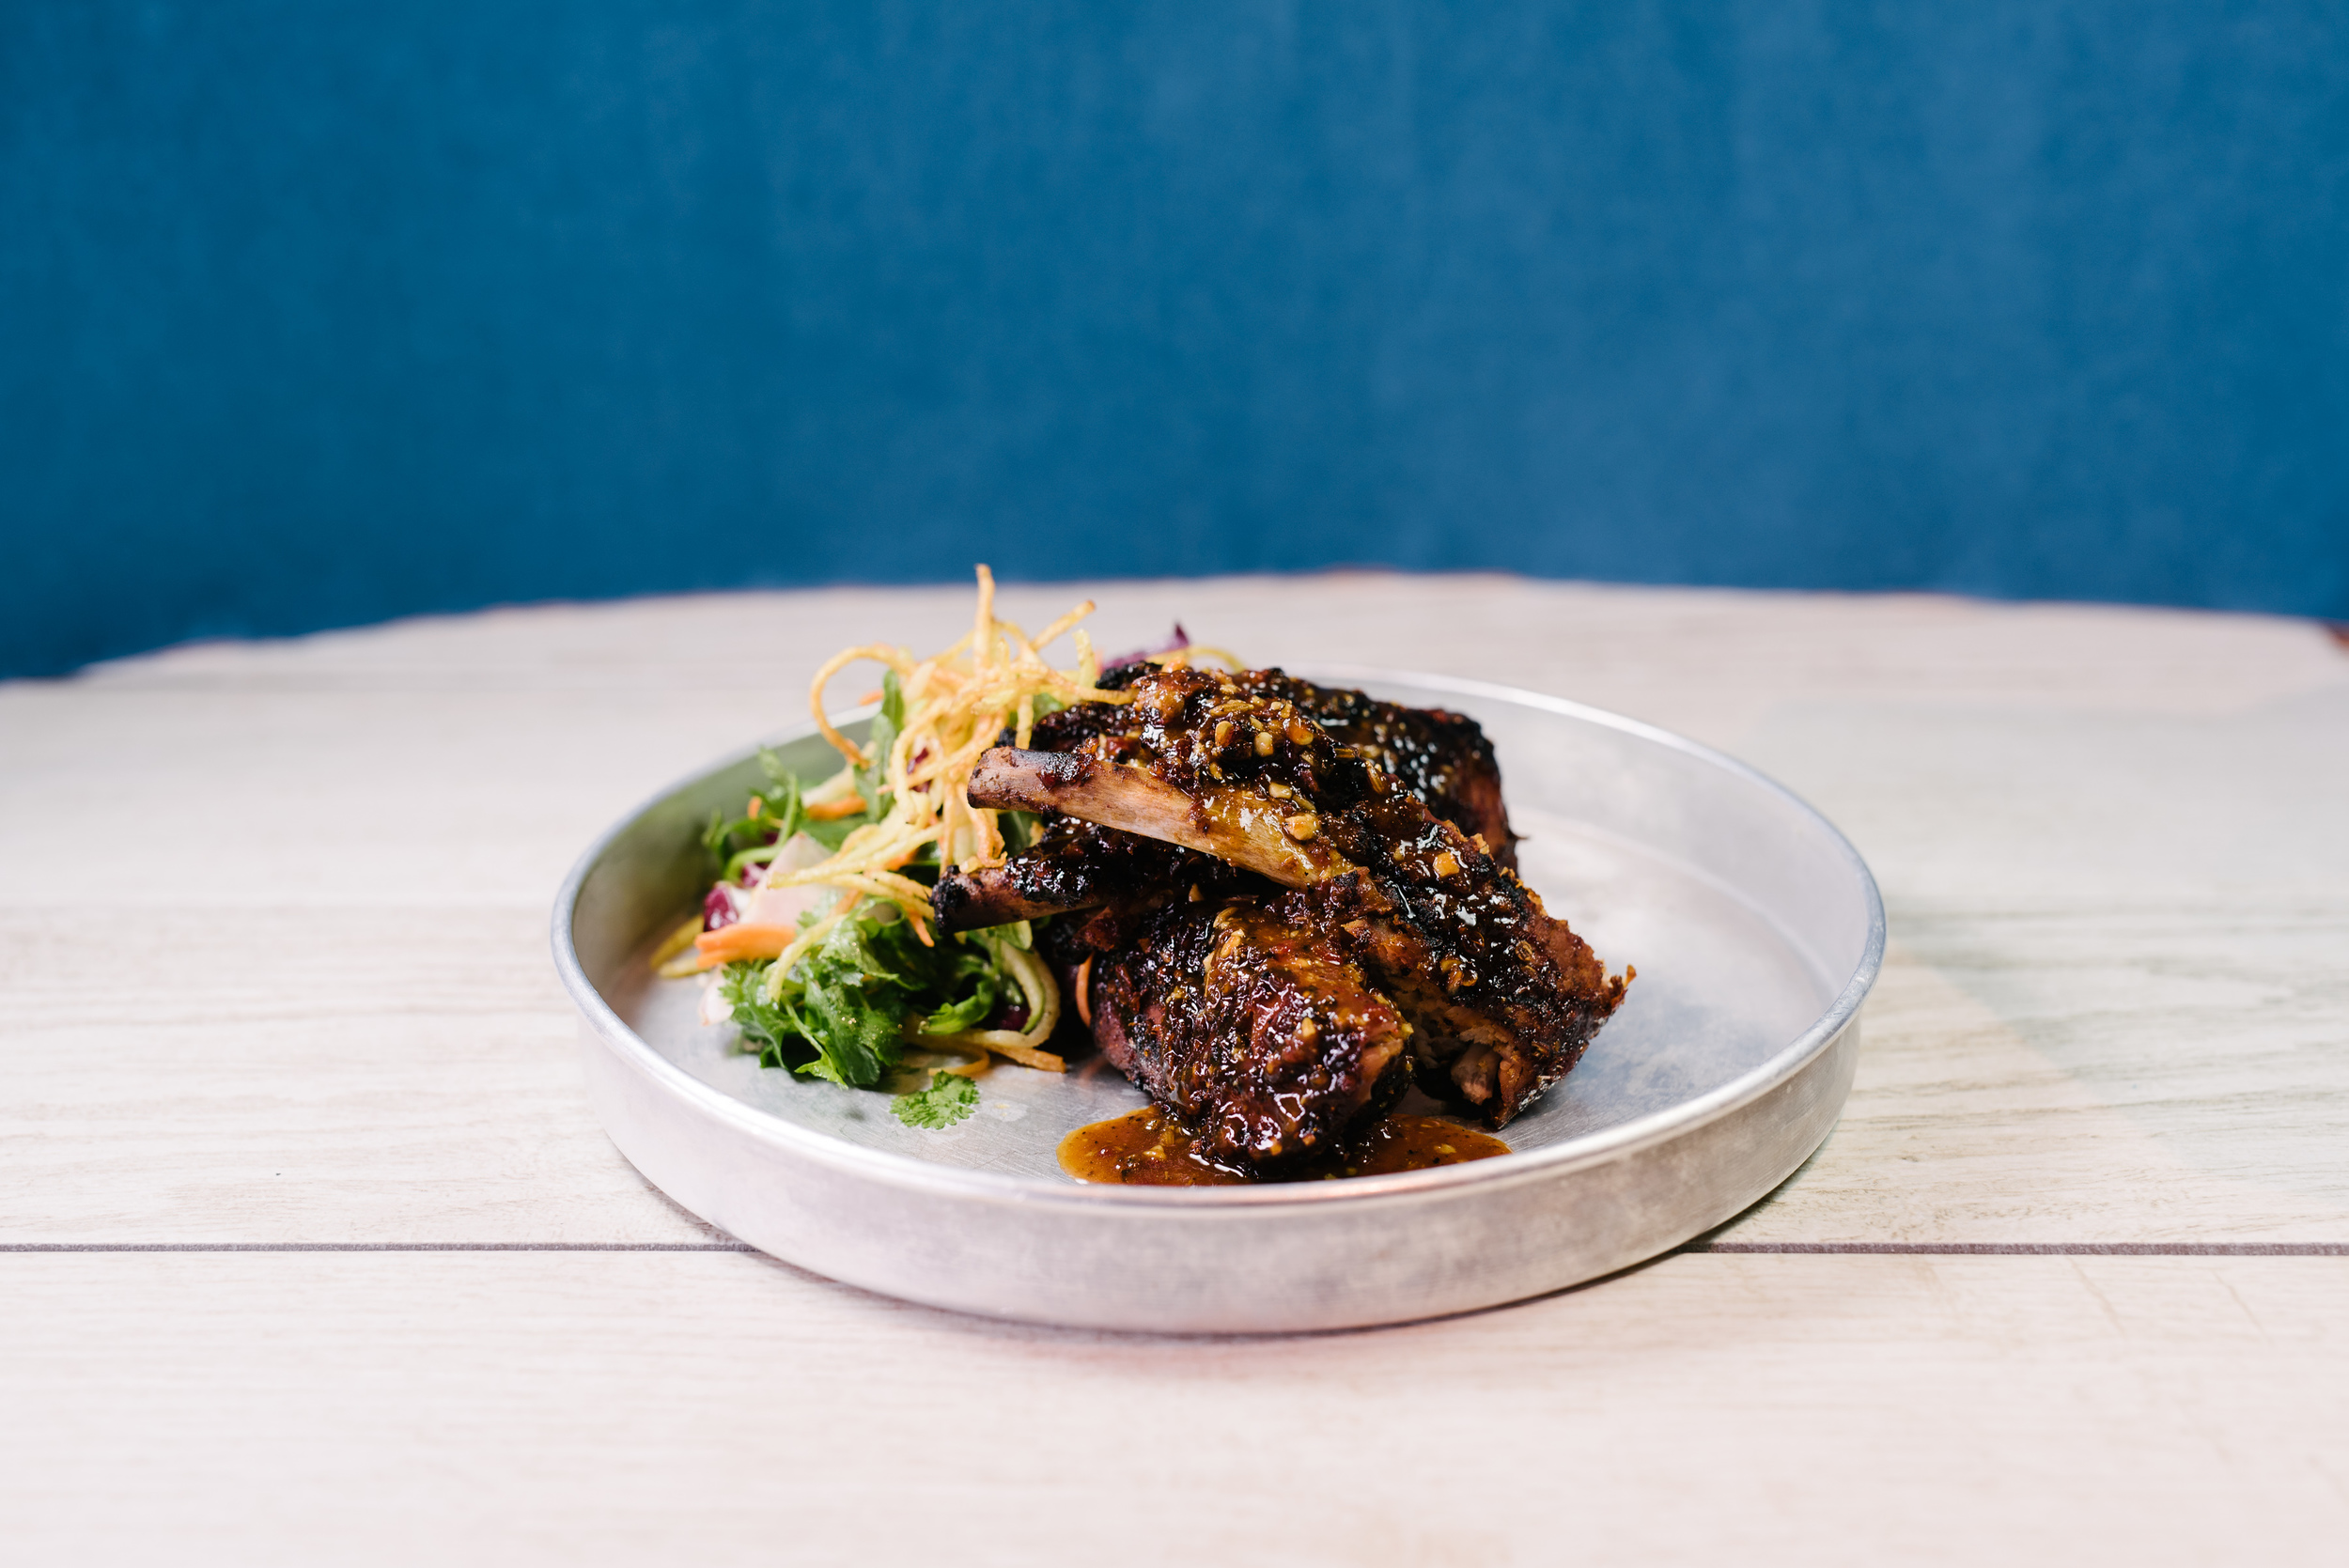 Pukka's Nagaland BBQ Pork Ribs with Slaw and Crispy Chaat. Image by Kyla Zanardi courtesey Samuel Adams.